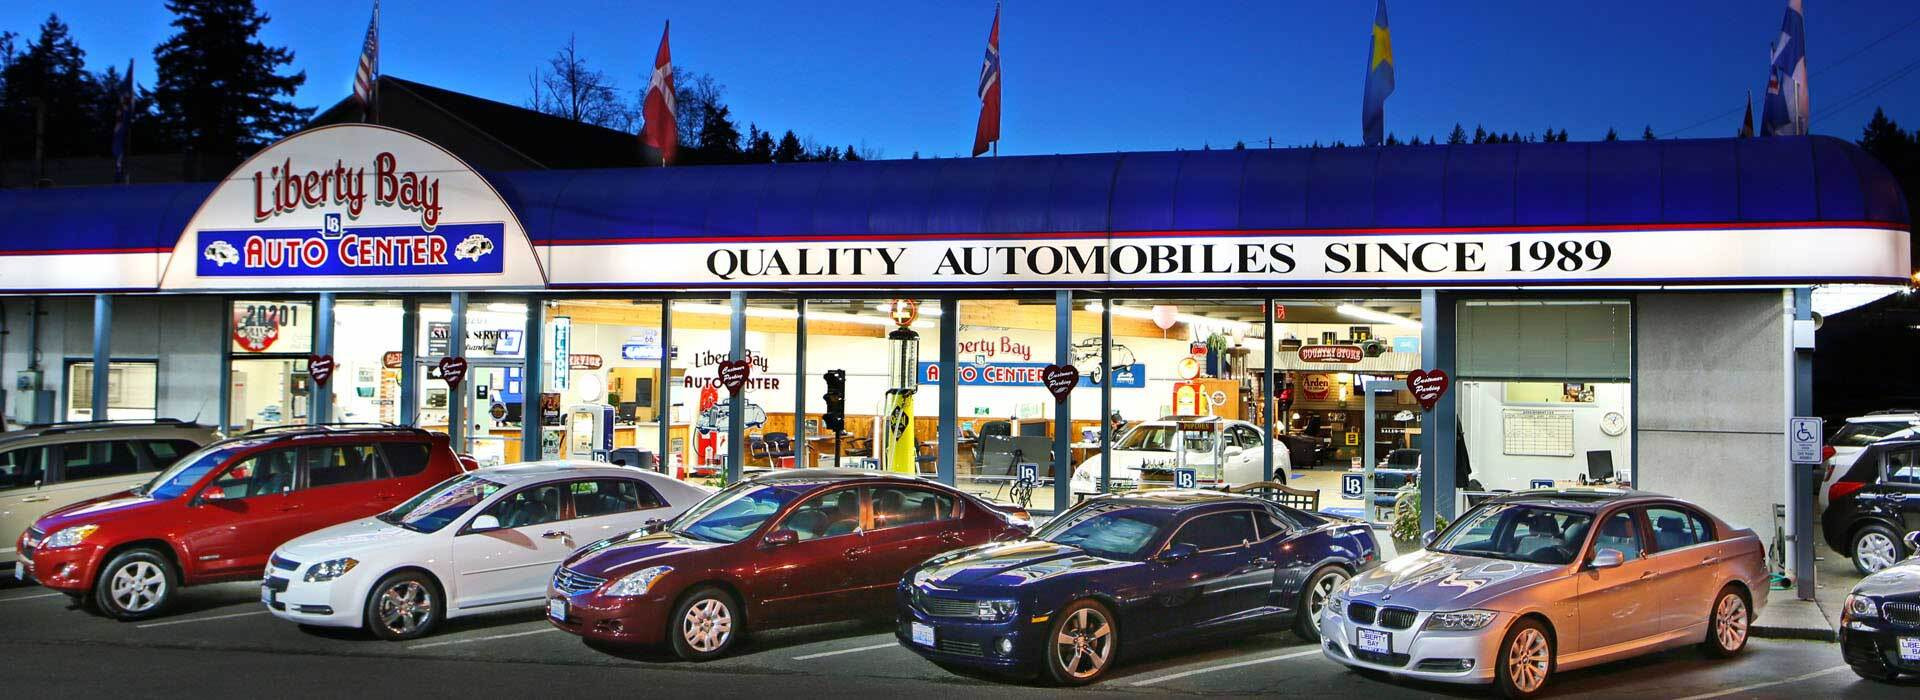 used car dealership in poulsbo wa liberty bay auto center. Black Bedroom Furniture Sets. Home Design Ideas